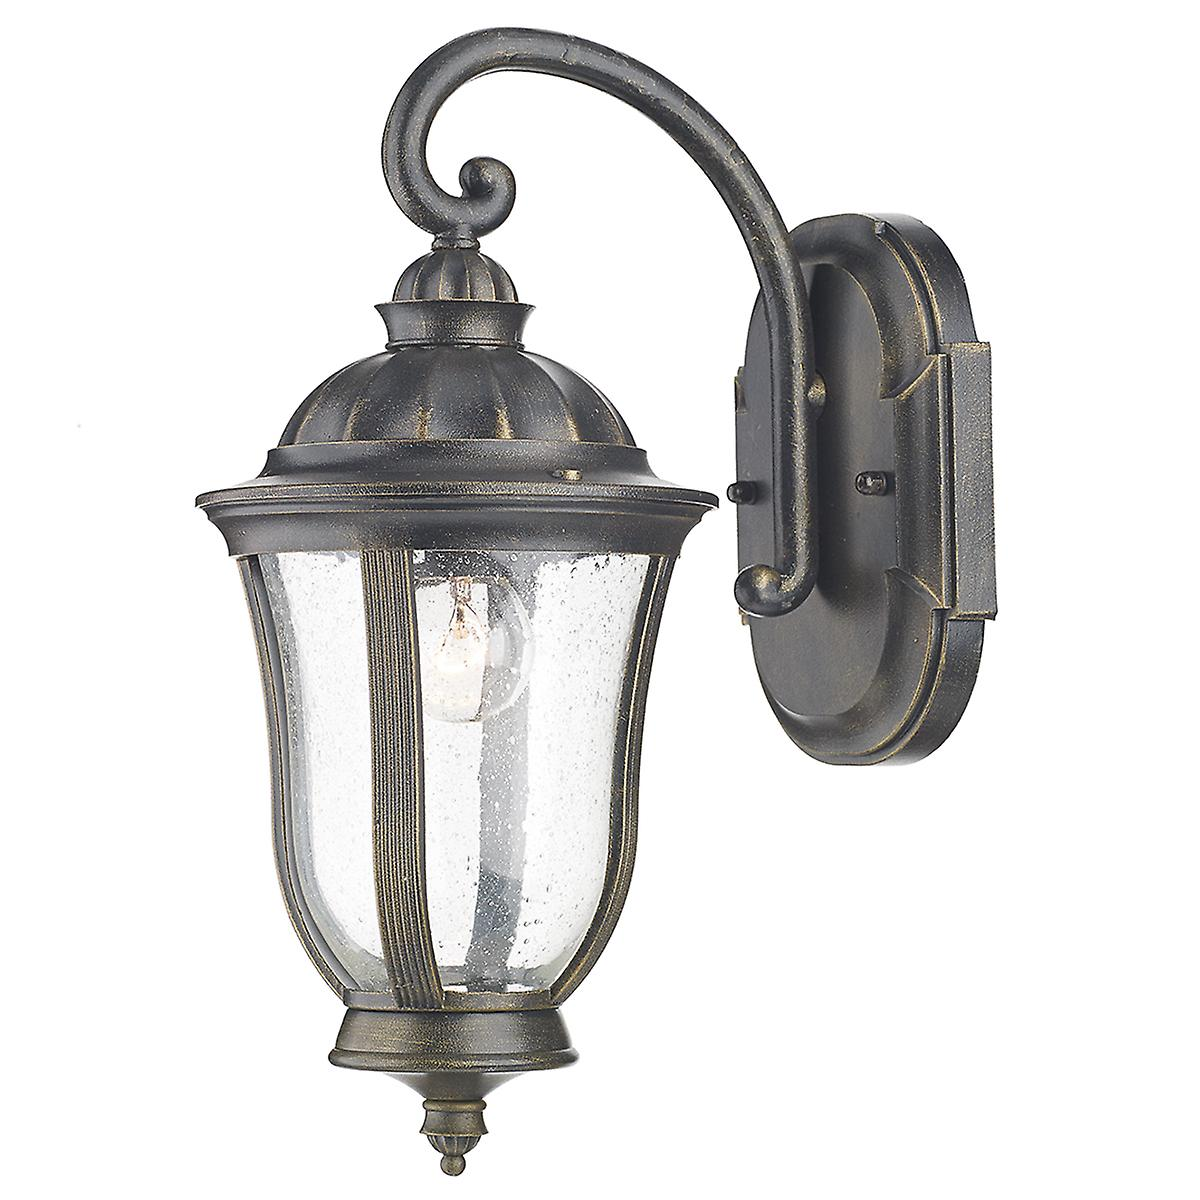 Dar JOH1635 Johnson Outdoor Wall Lantern Double Insulated